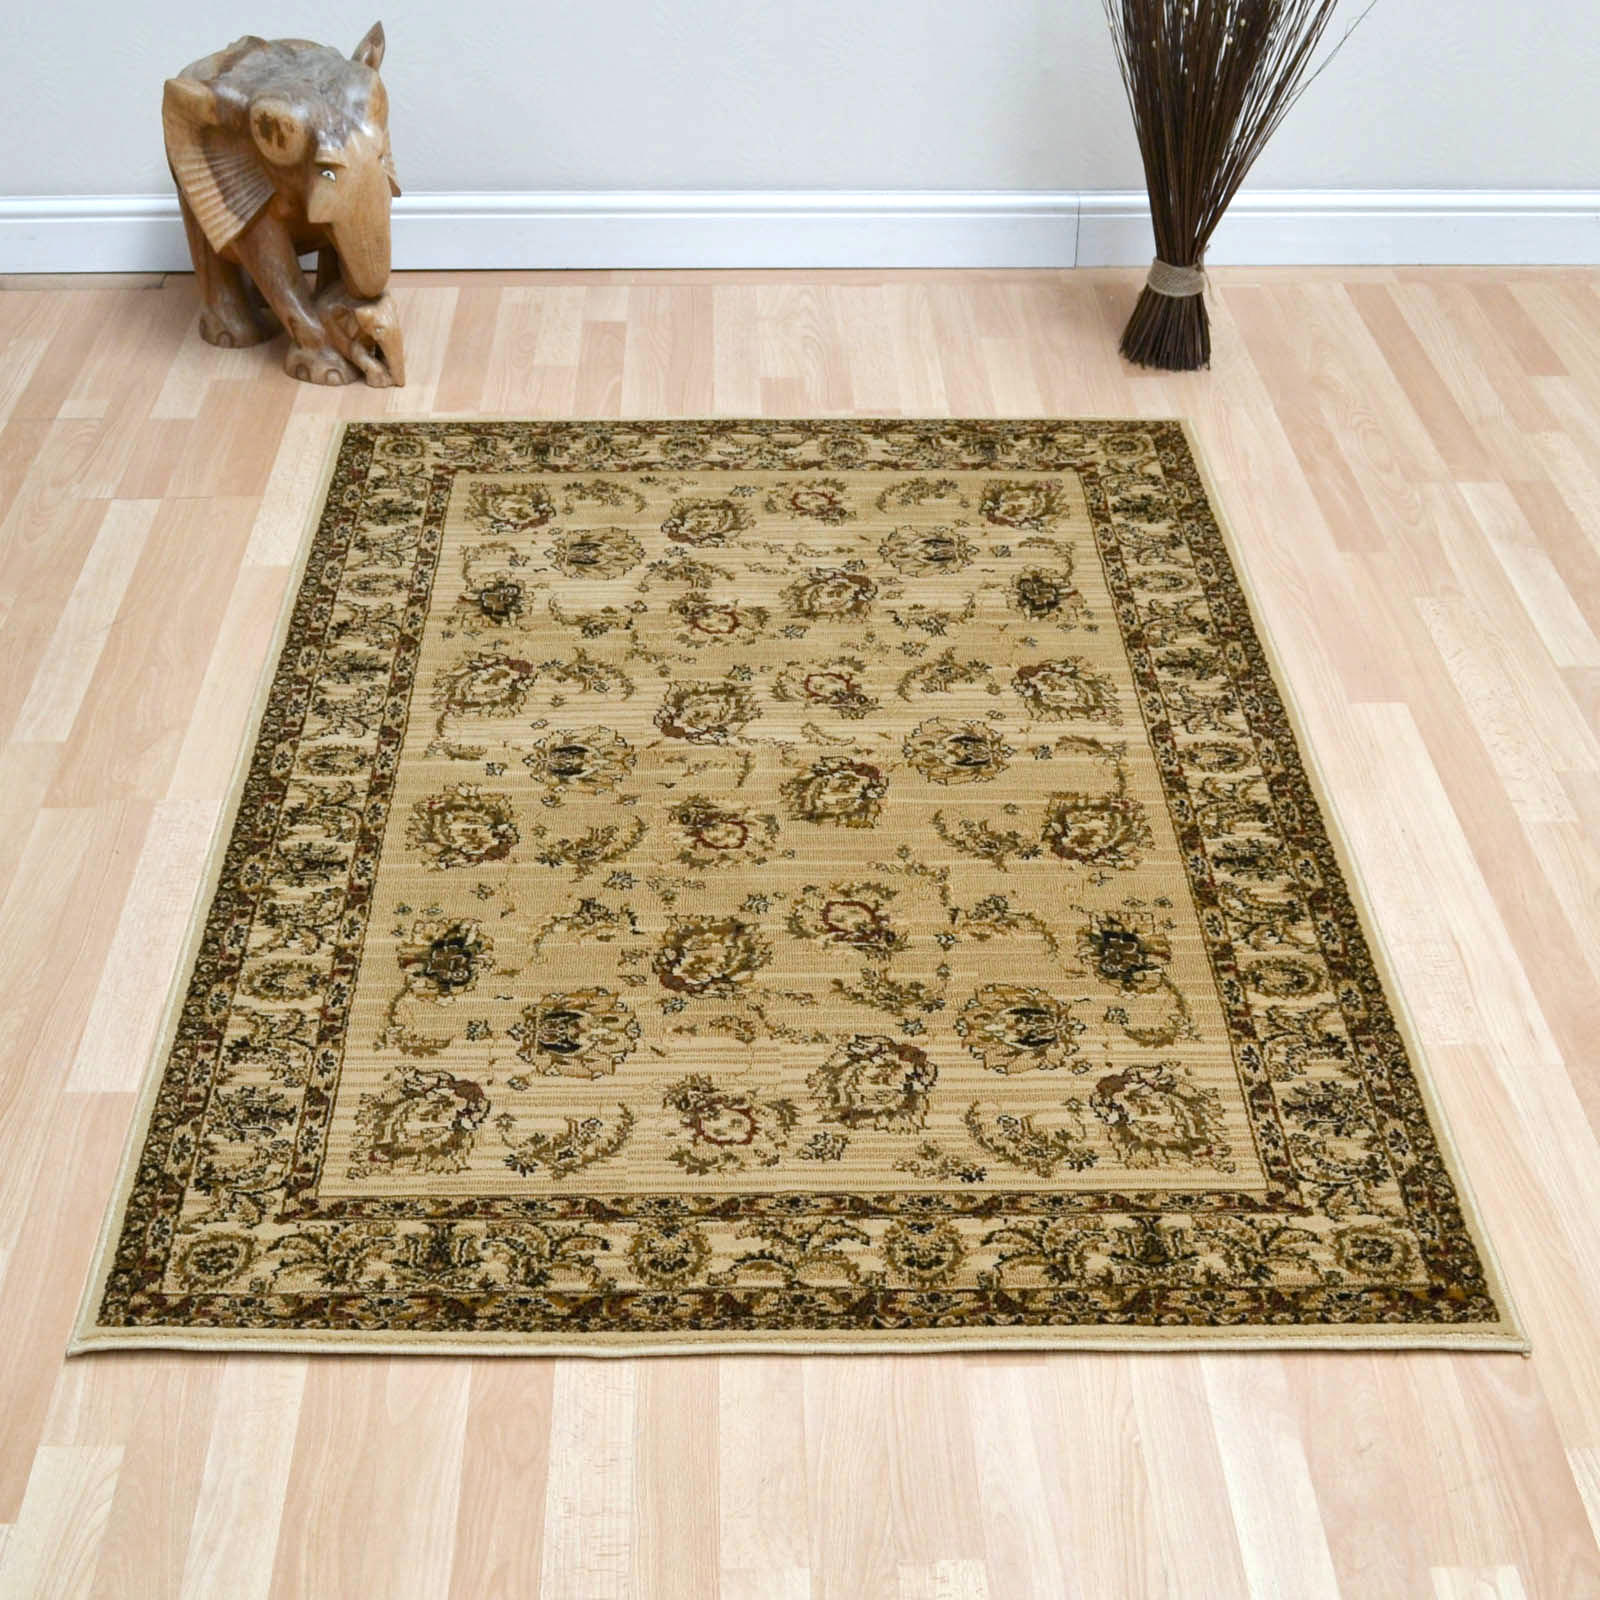 Garous Rugs in Gold